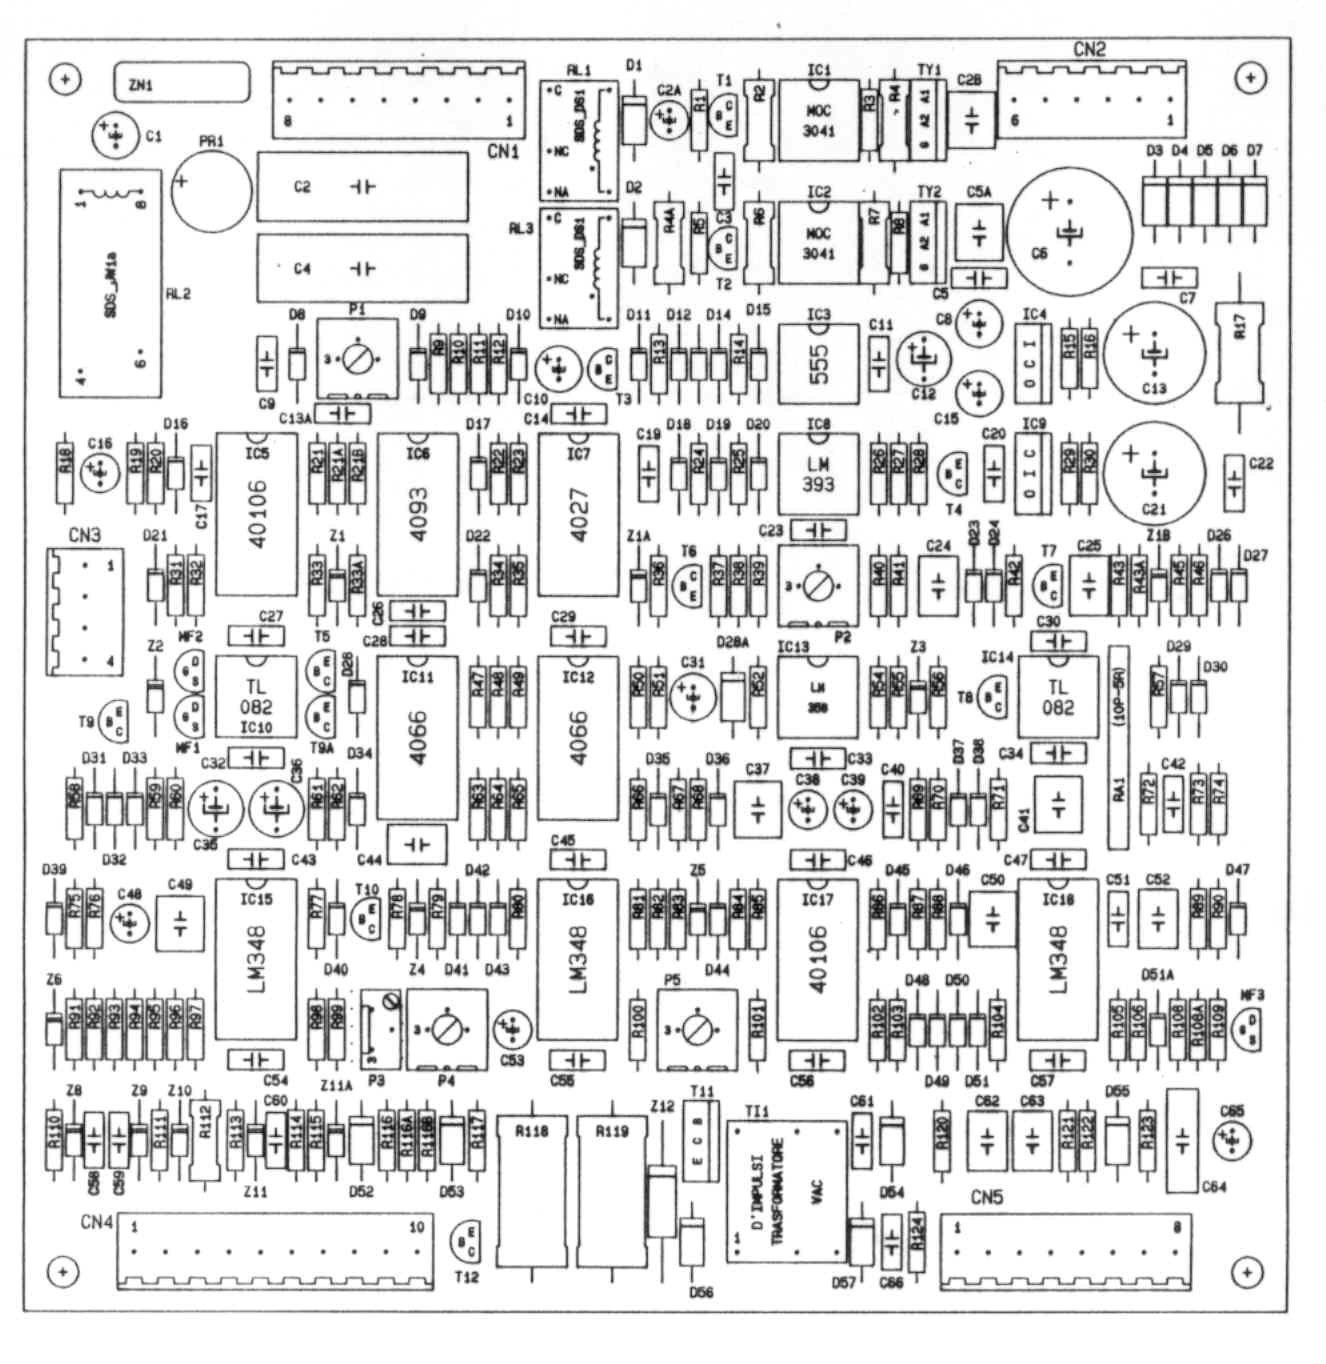 Sip 05006 Tig 160 Ac Dc Pcb Layout Inverter Welding Board Cutting Machine Circuit Industry